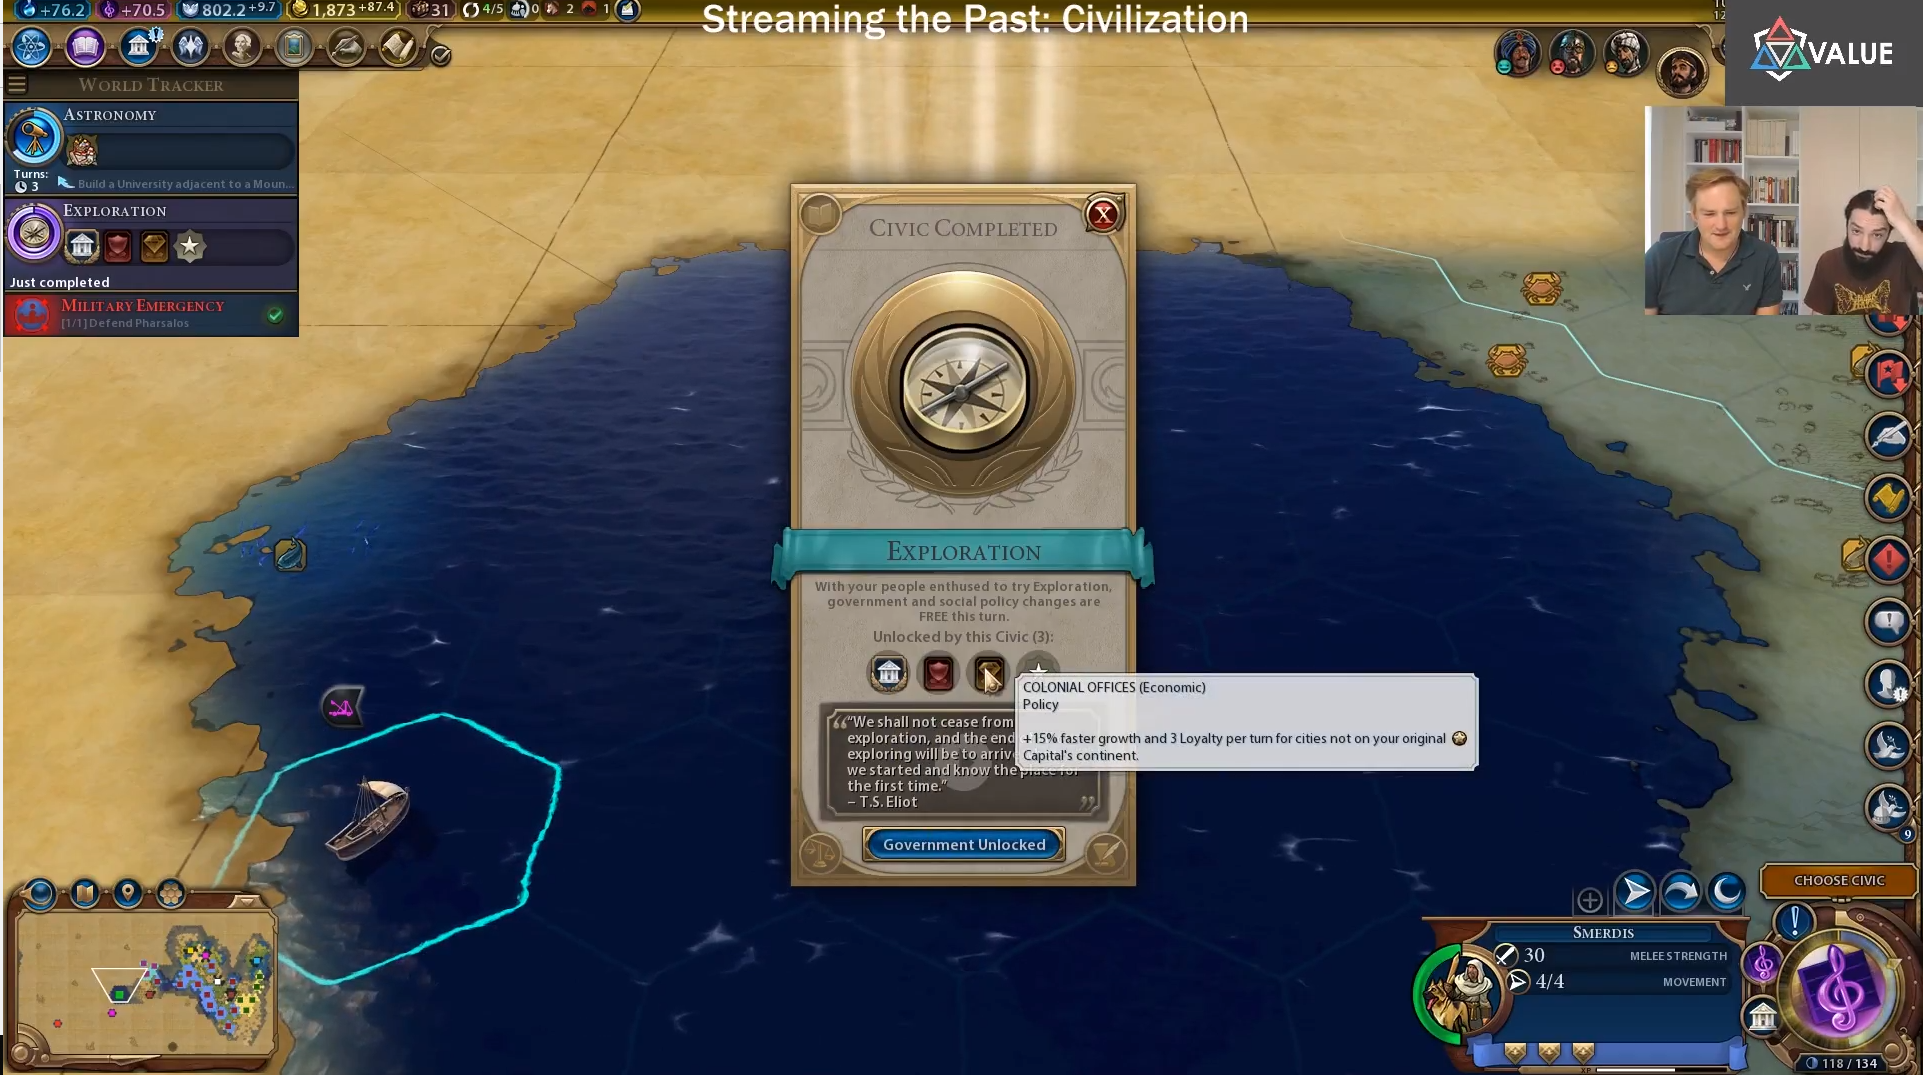 Streaming the Past: One More Turn 8